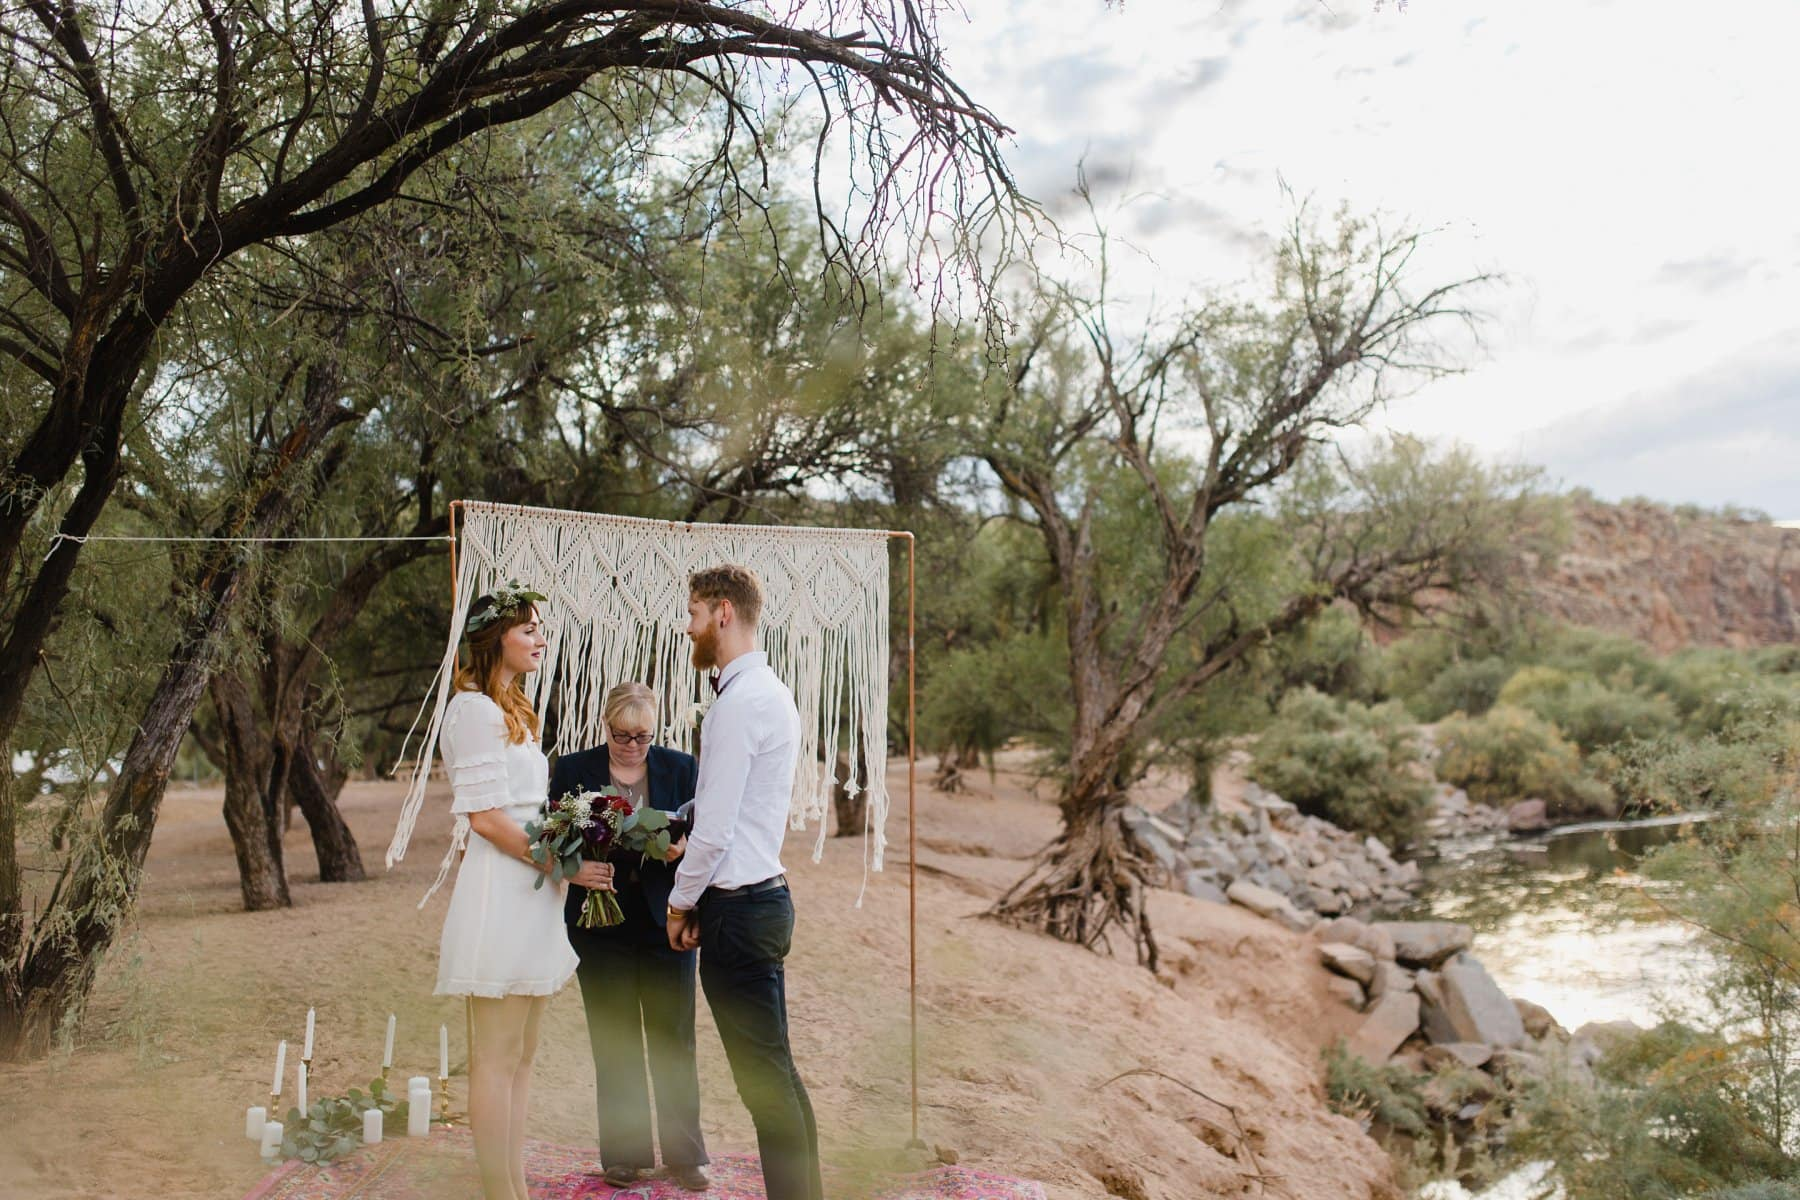 Salt River elopement with macrame ceremony backdrop